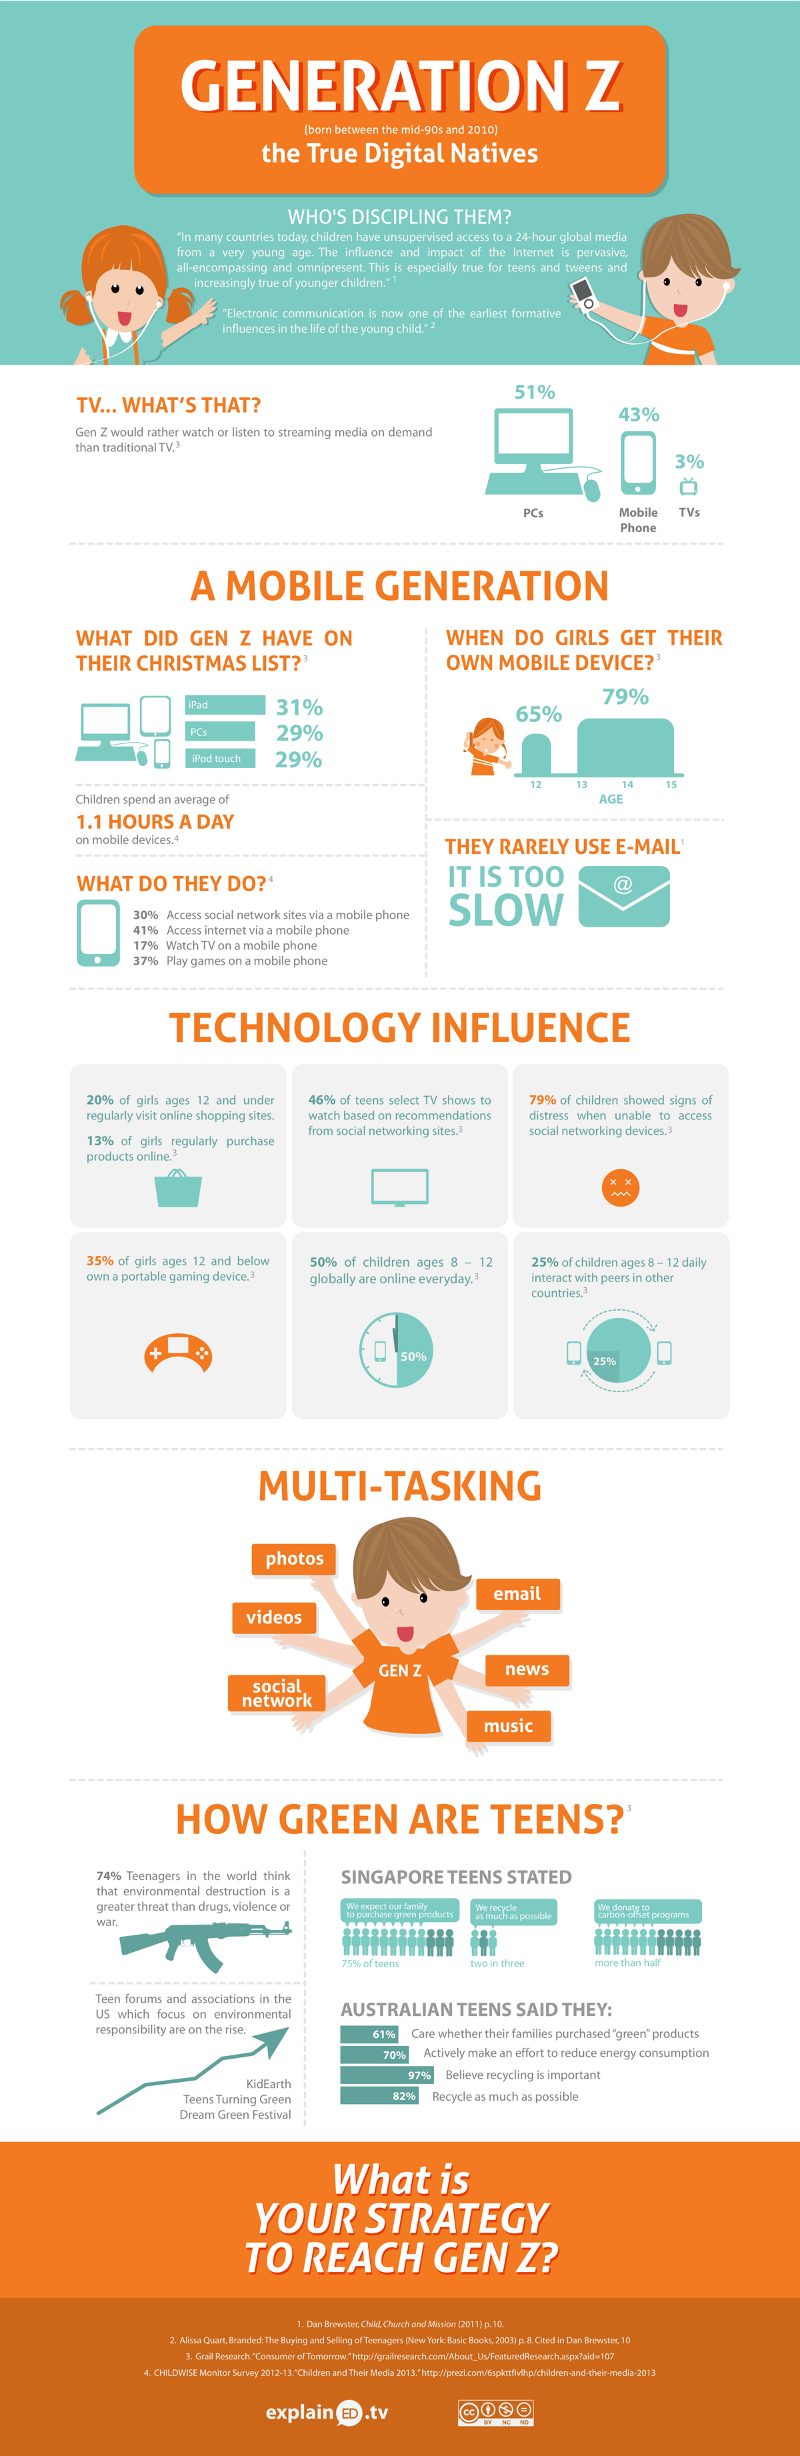 Generation Z Facts and Statistics